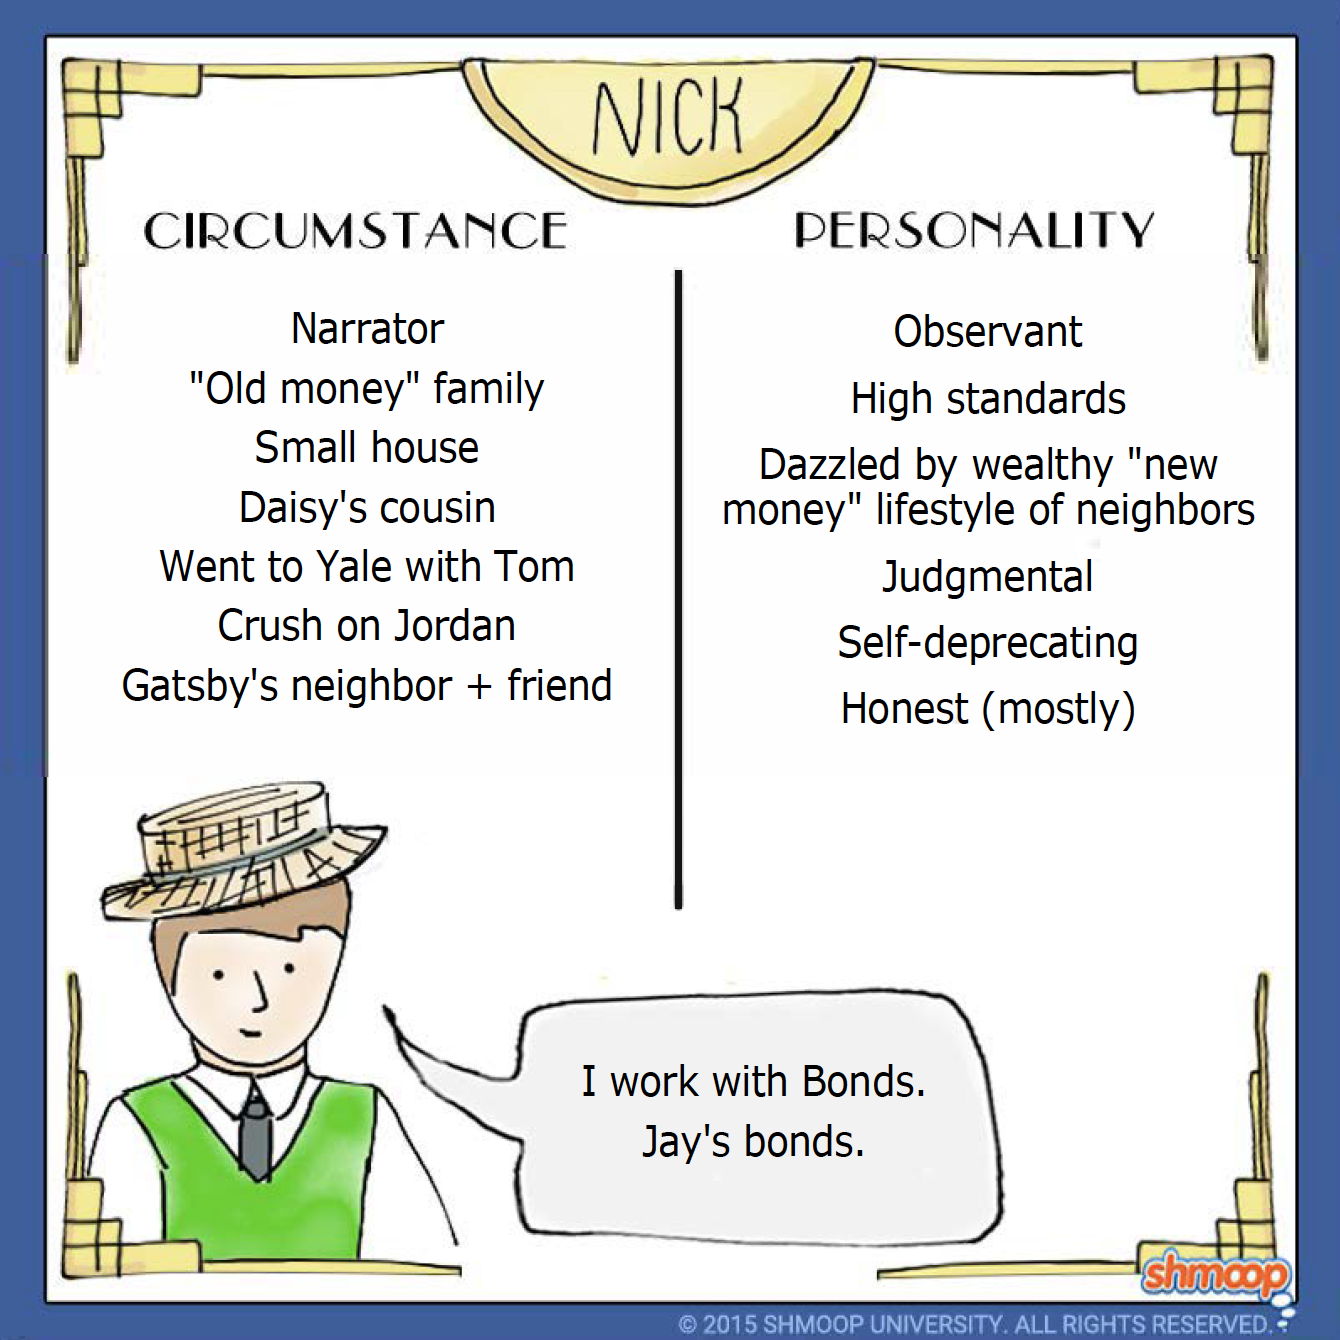 tom and the corruption of the american dream in the novel the great gatsby by f scott fitzgerald Home » comparative literature » analysis of corruption in nick carraway of corruption of the american dream great gatsby, a novel by f scott fitzgerald.